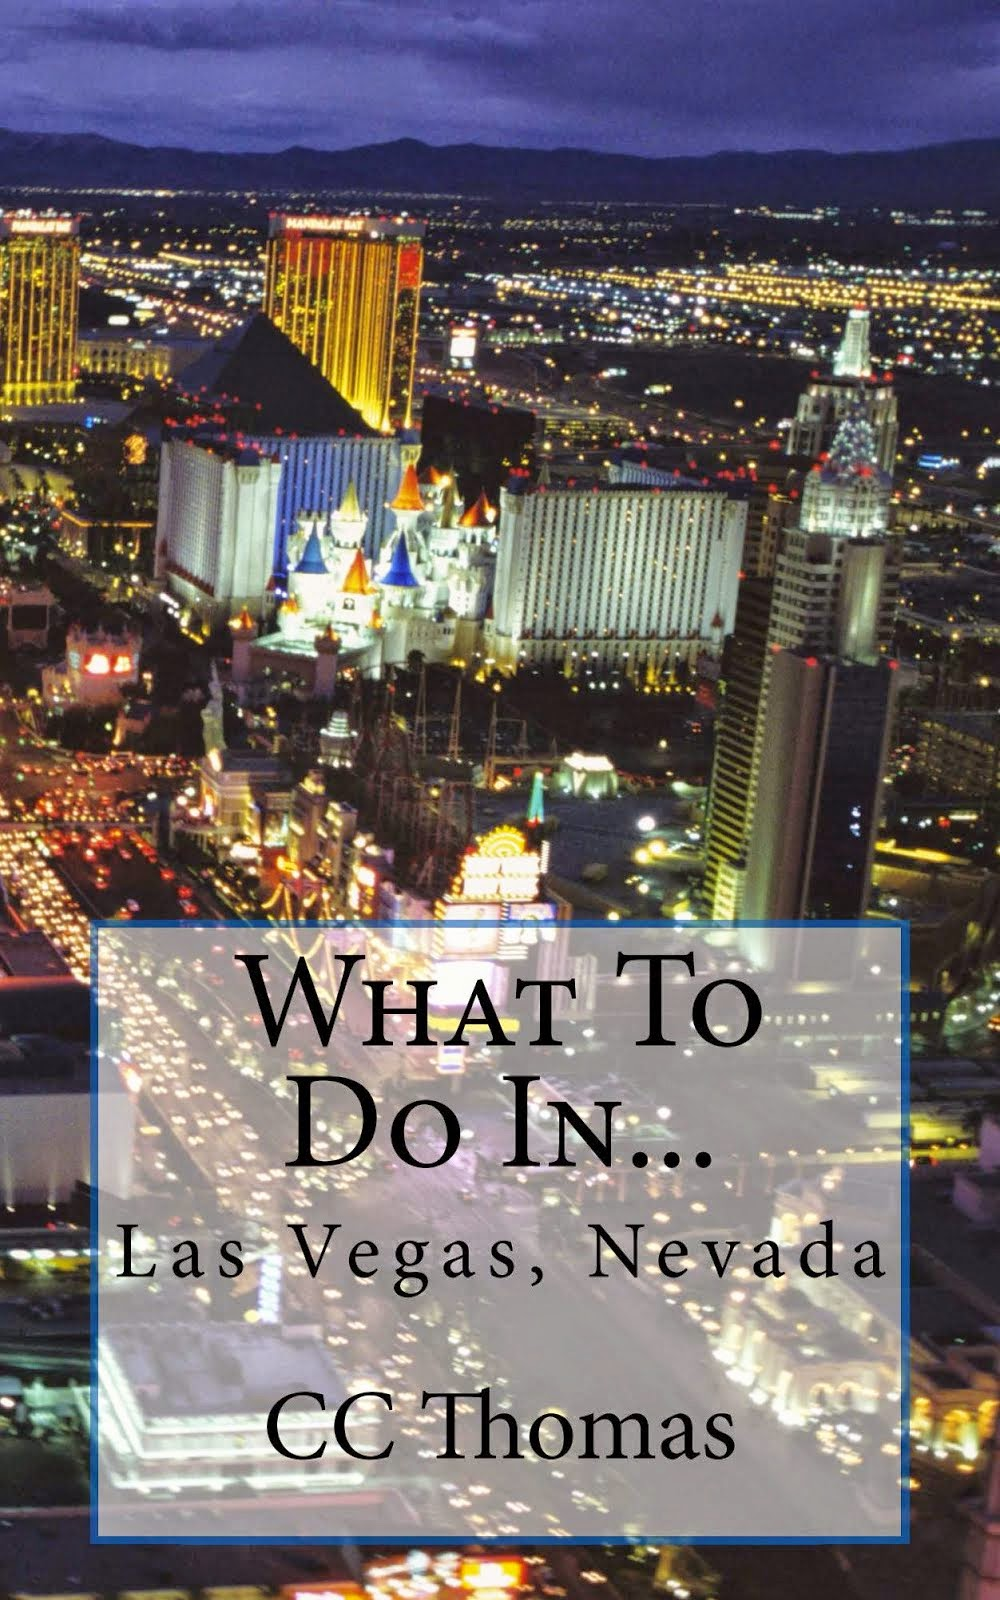 What To Do In Las Vegas, Nevada